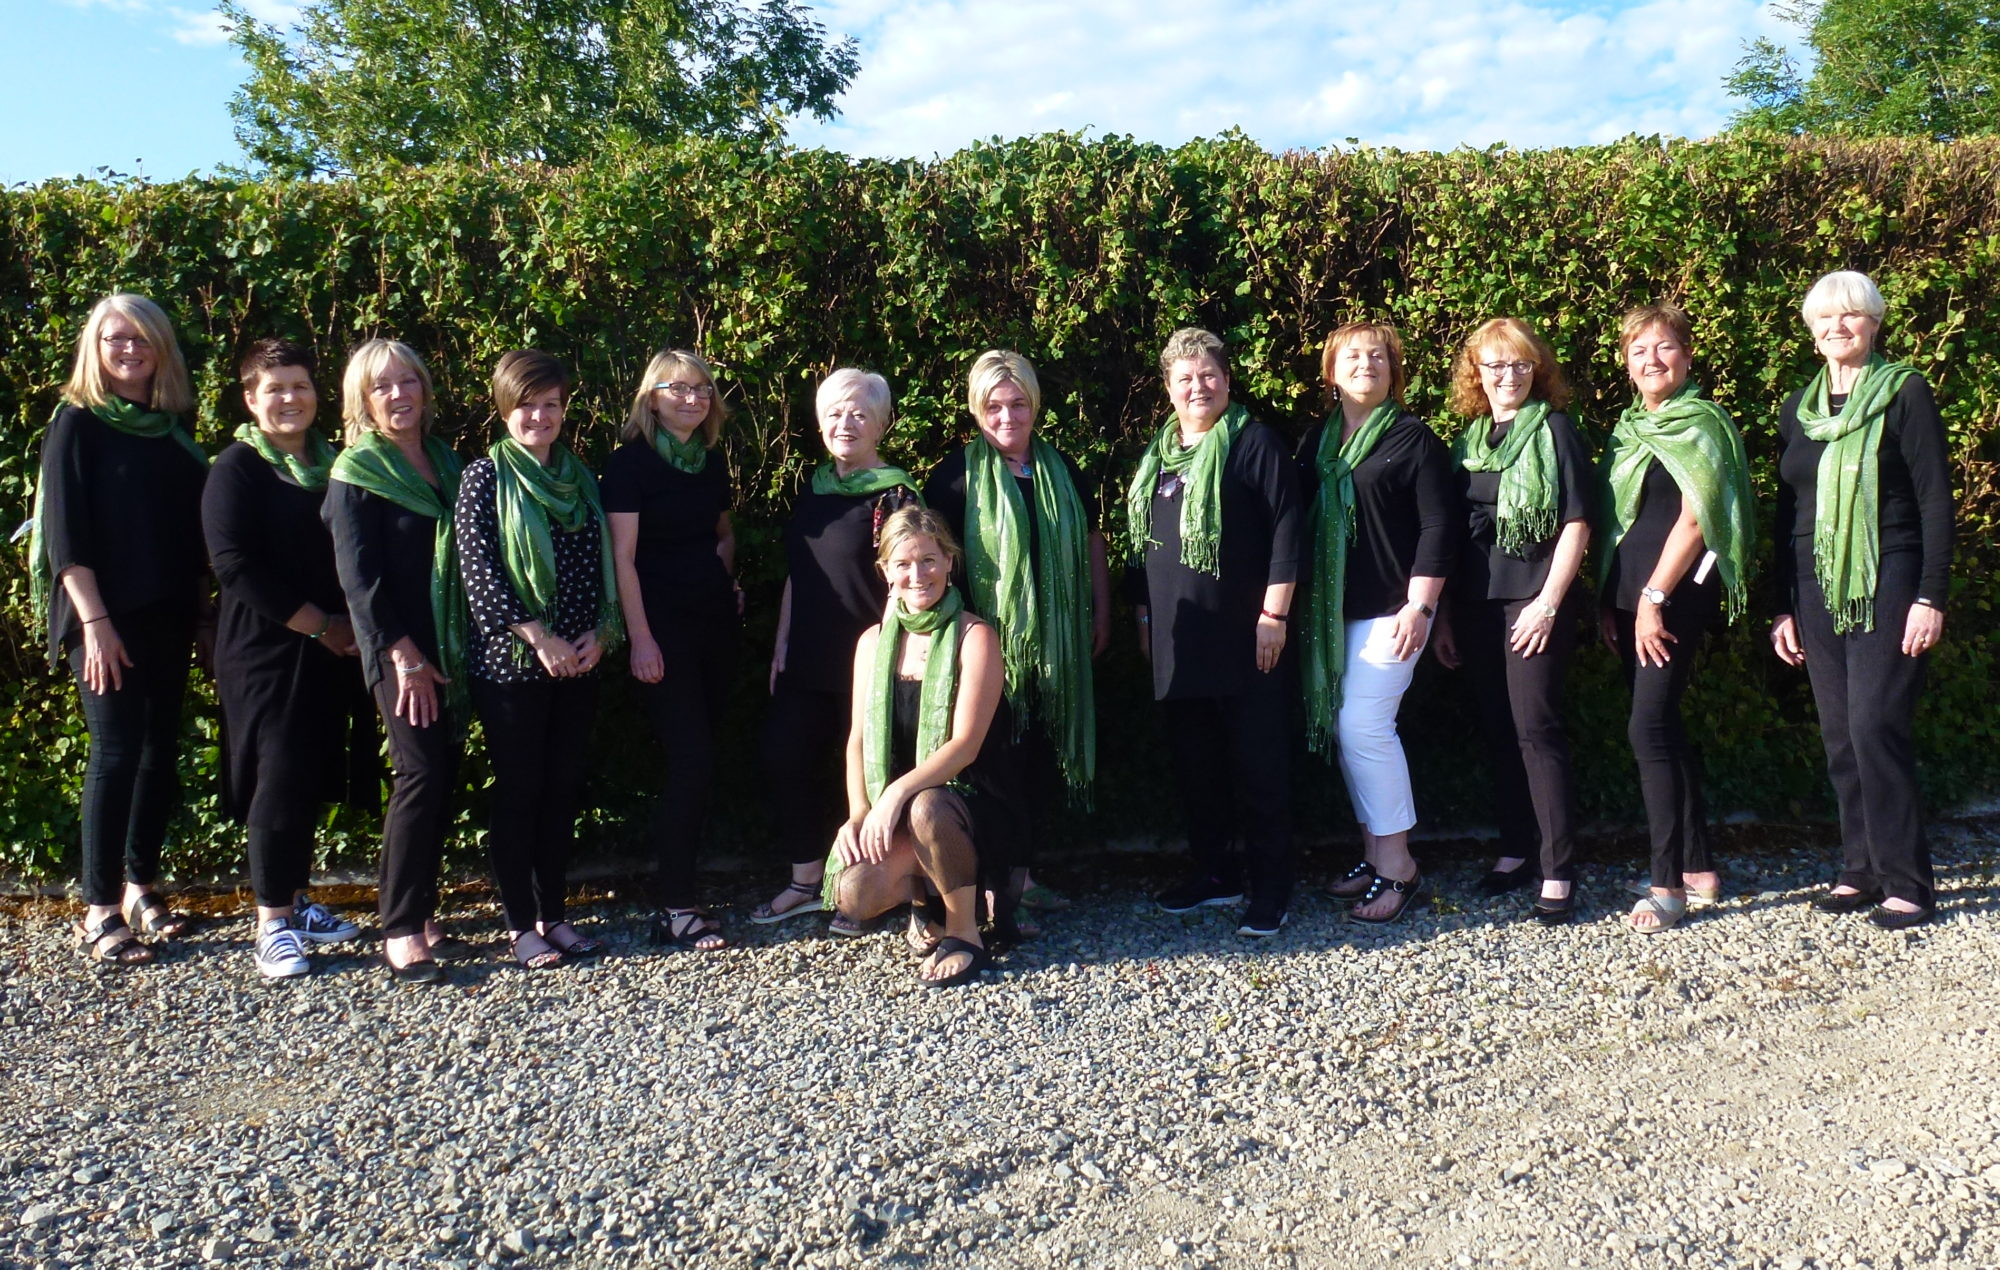 Mourne Community Choir